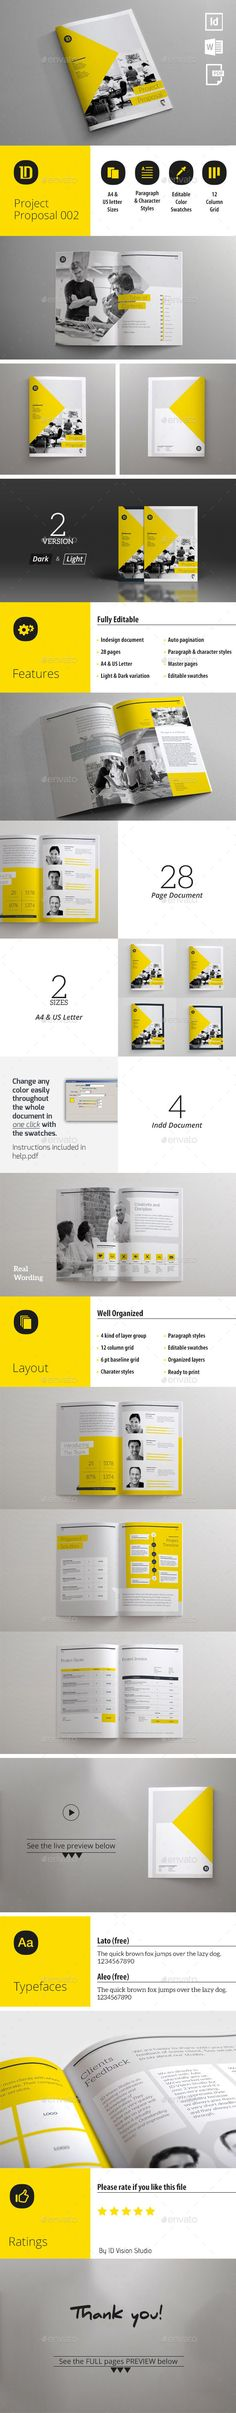 Project Proposal Template 002 (CS, 8.27x11.02, a4, agency, agreement, brief, business, clean, contract, corporate, creative, customizable, design, document, estimate, form, graphic, identity, indesign, introduction, invoice, layout, modern, print, professional, project, proposal, quotation, quote, sharp, template, typographic)